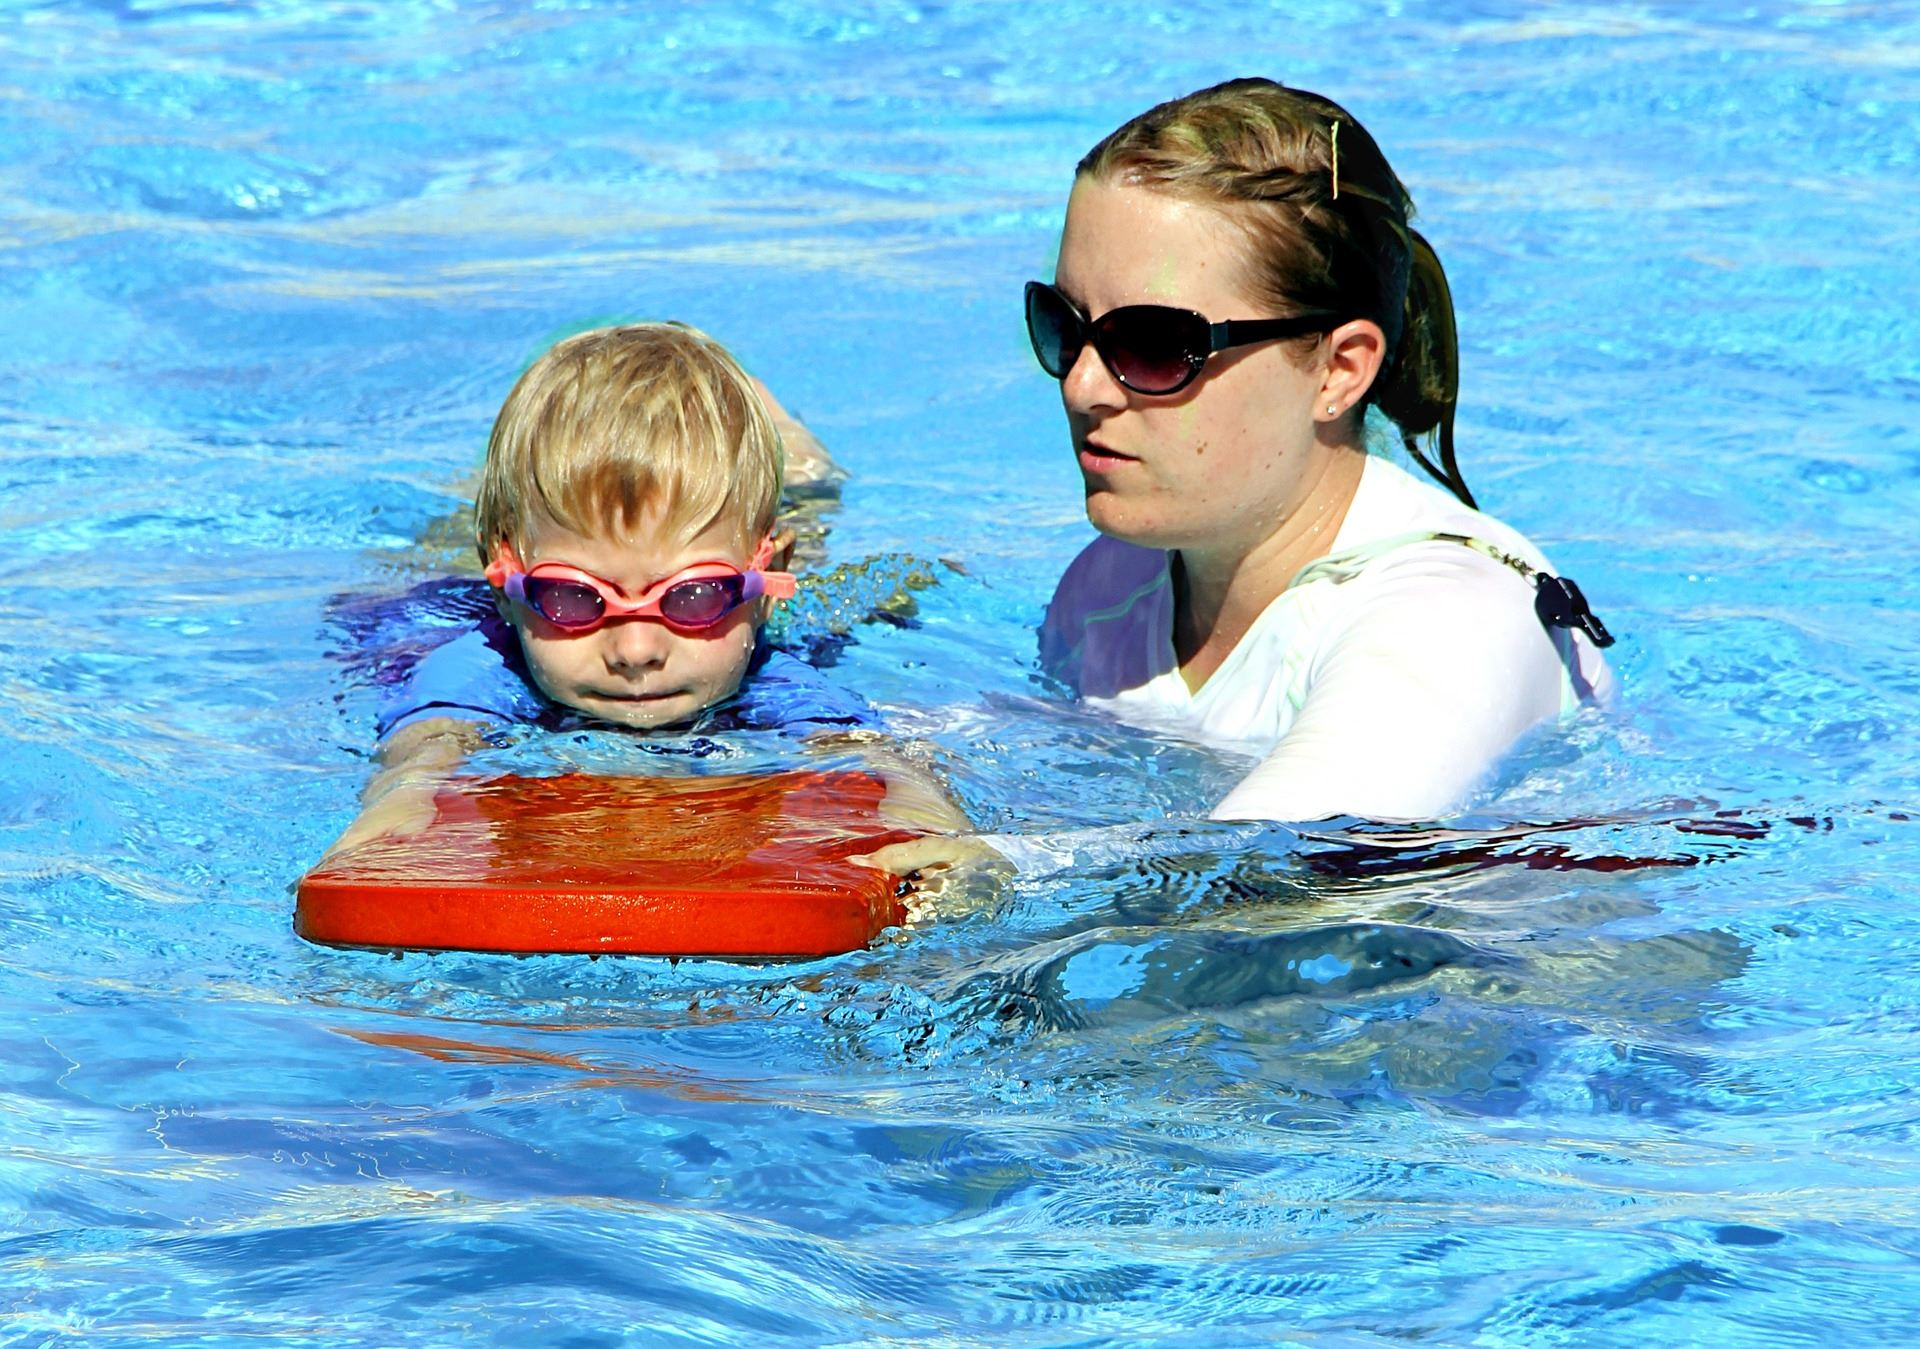 child and lifeguard during a swimming lesson